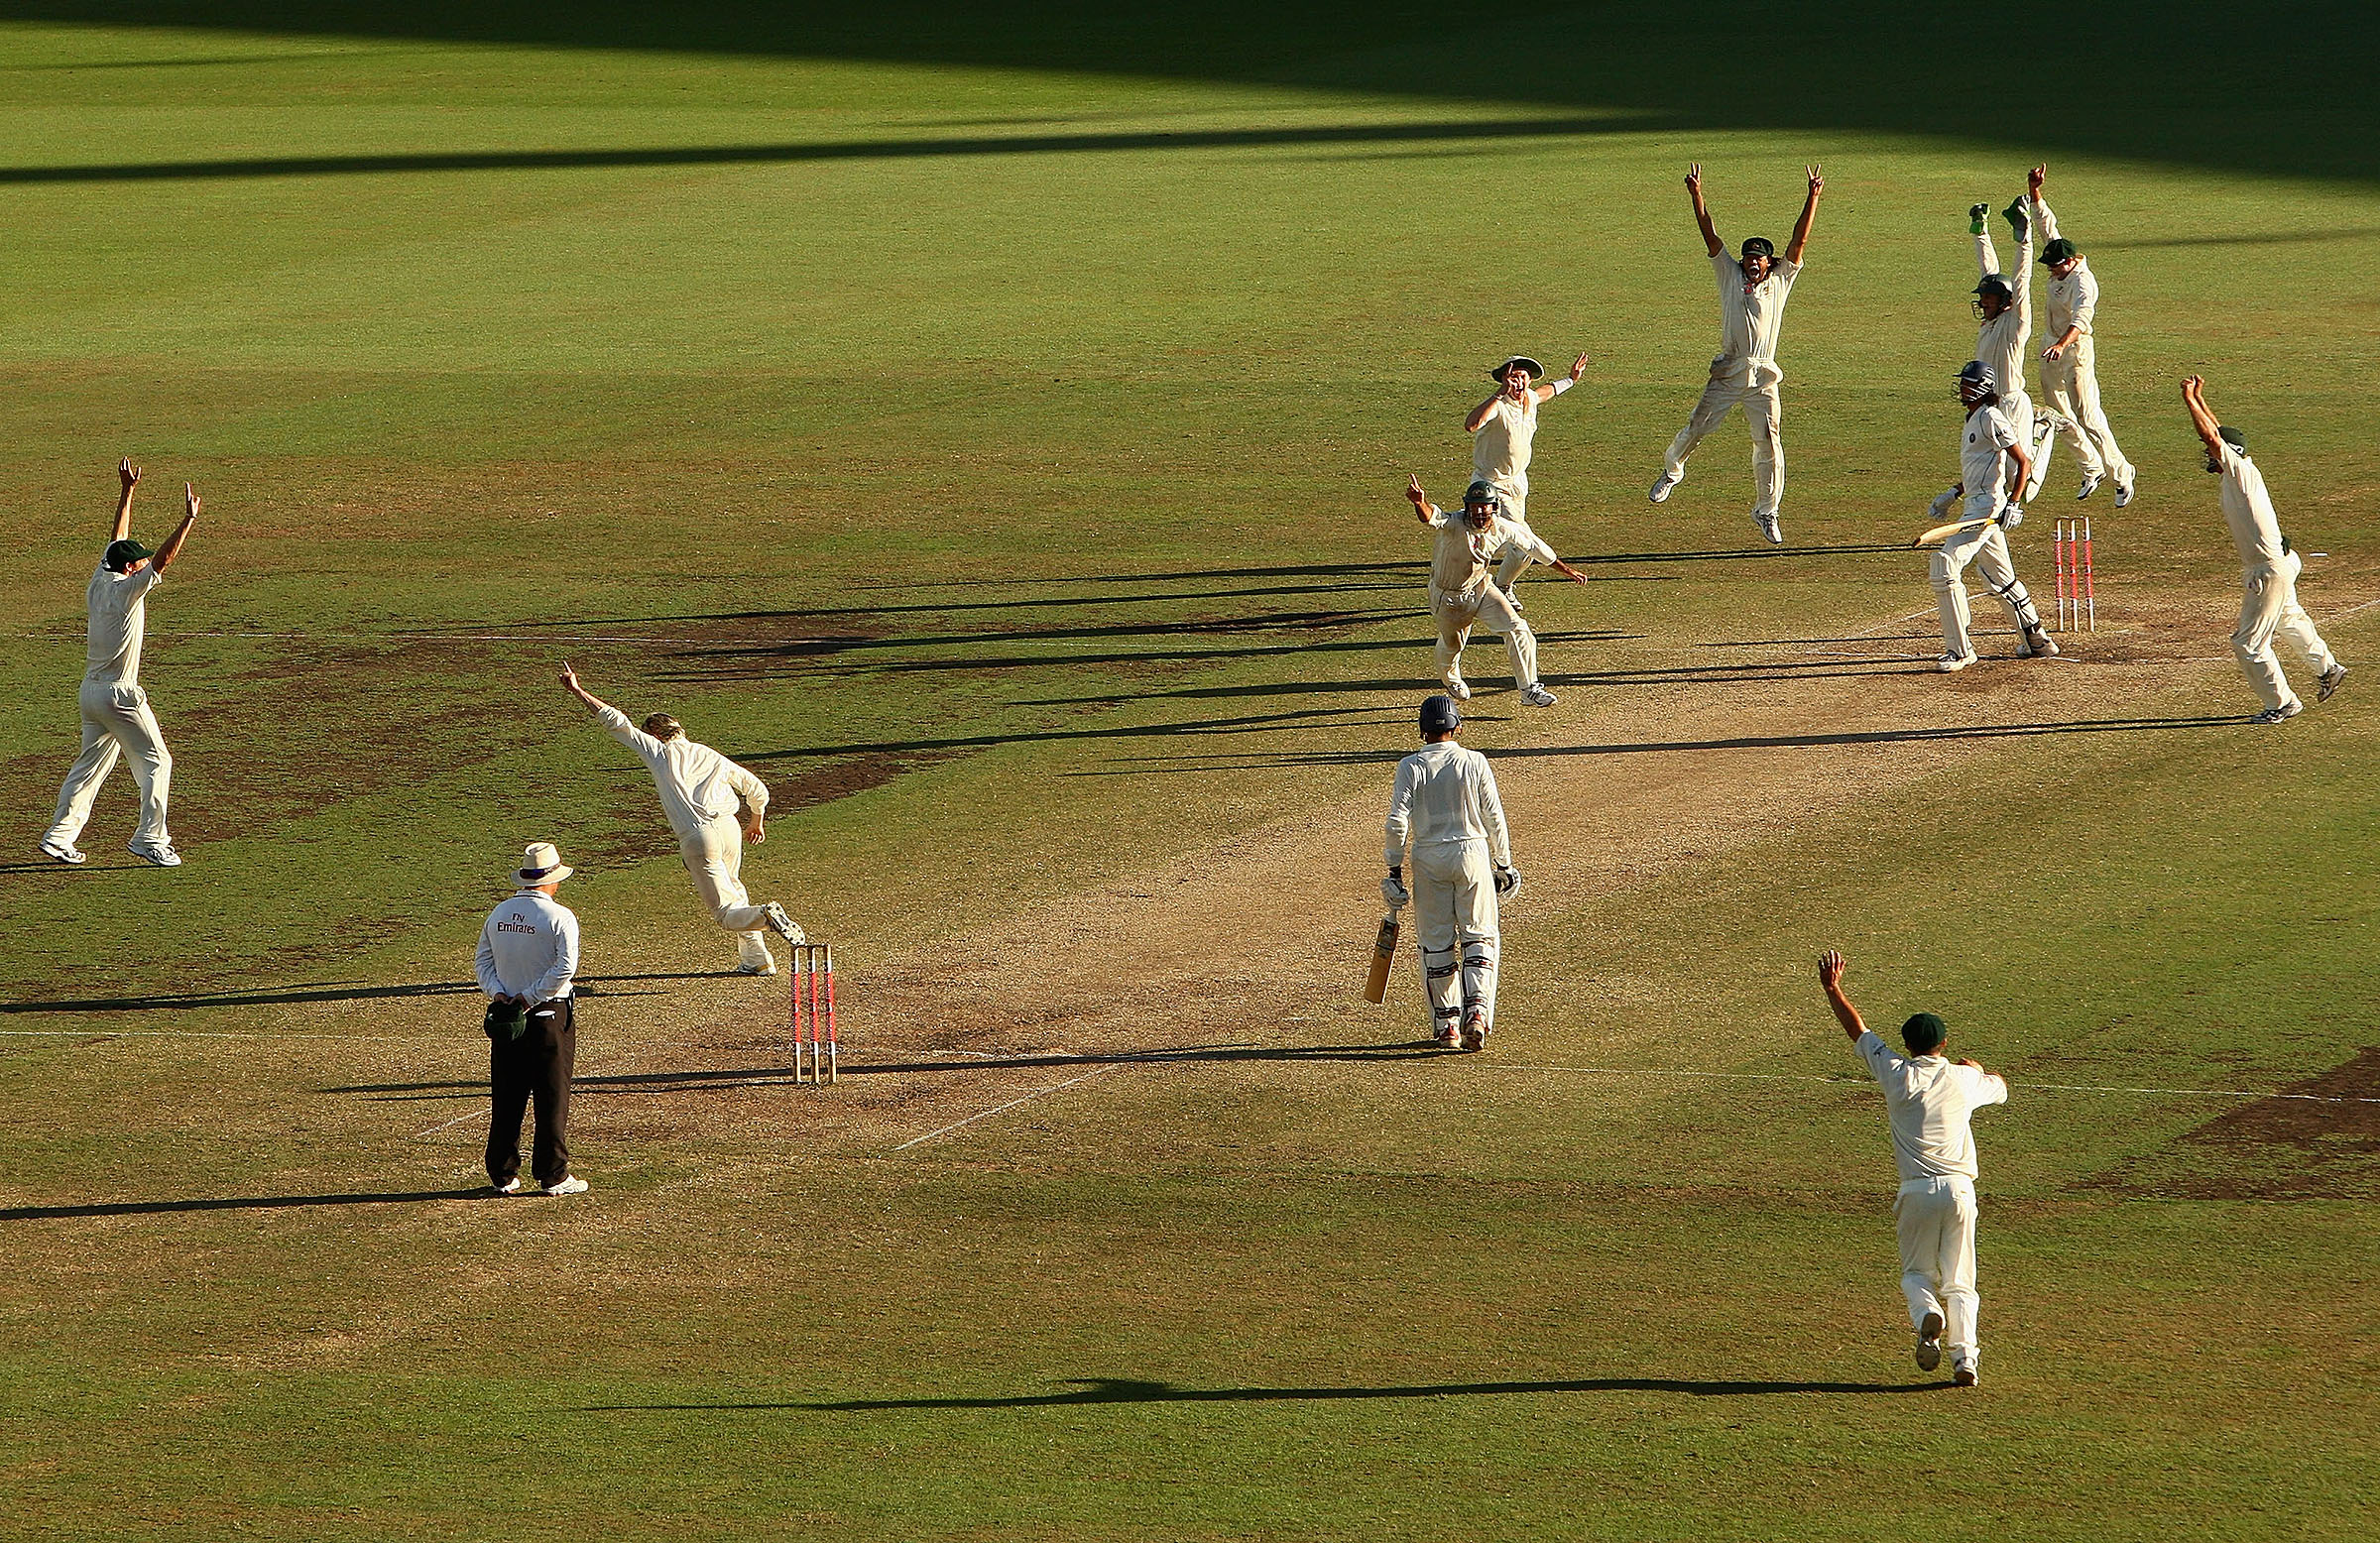 The final wicket from the infamous 2008 SCG Test // Getty